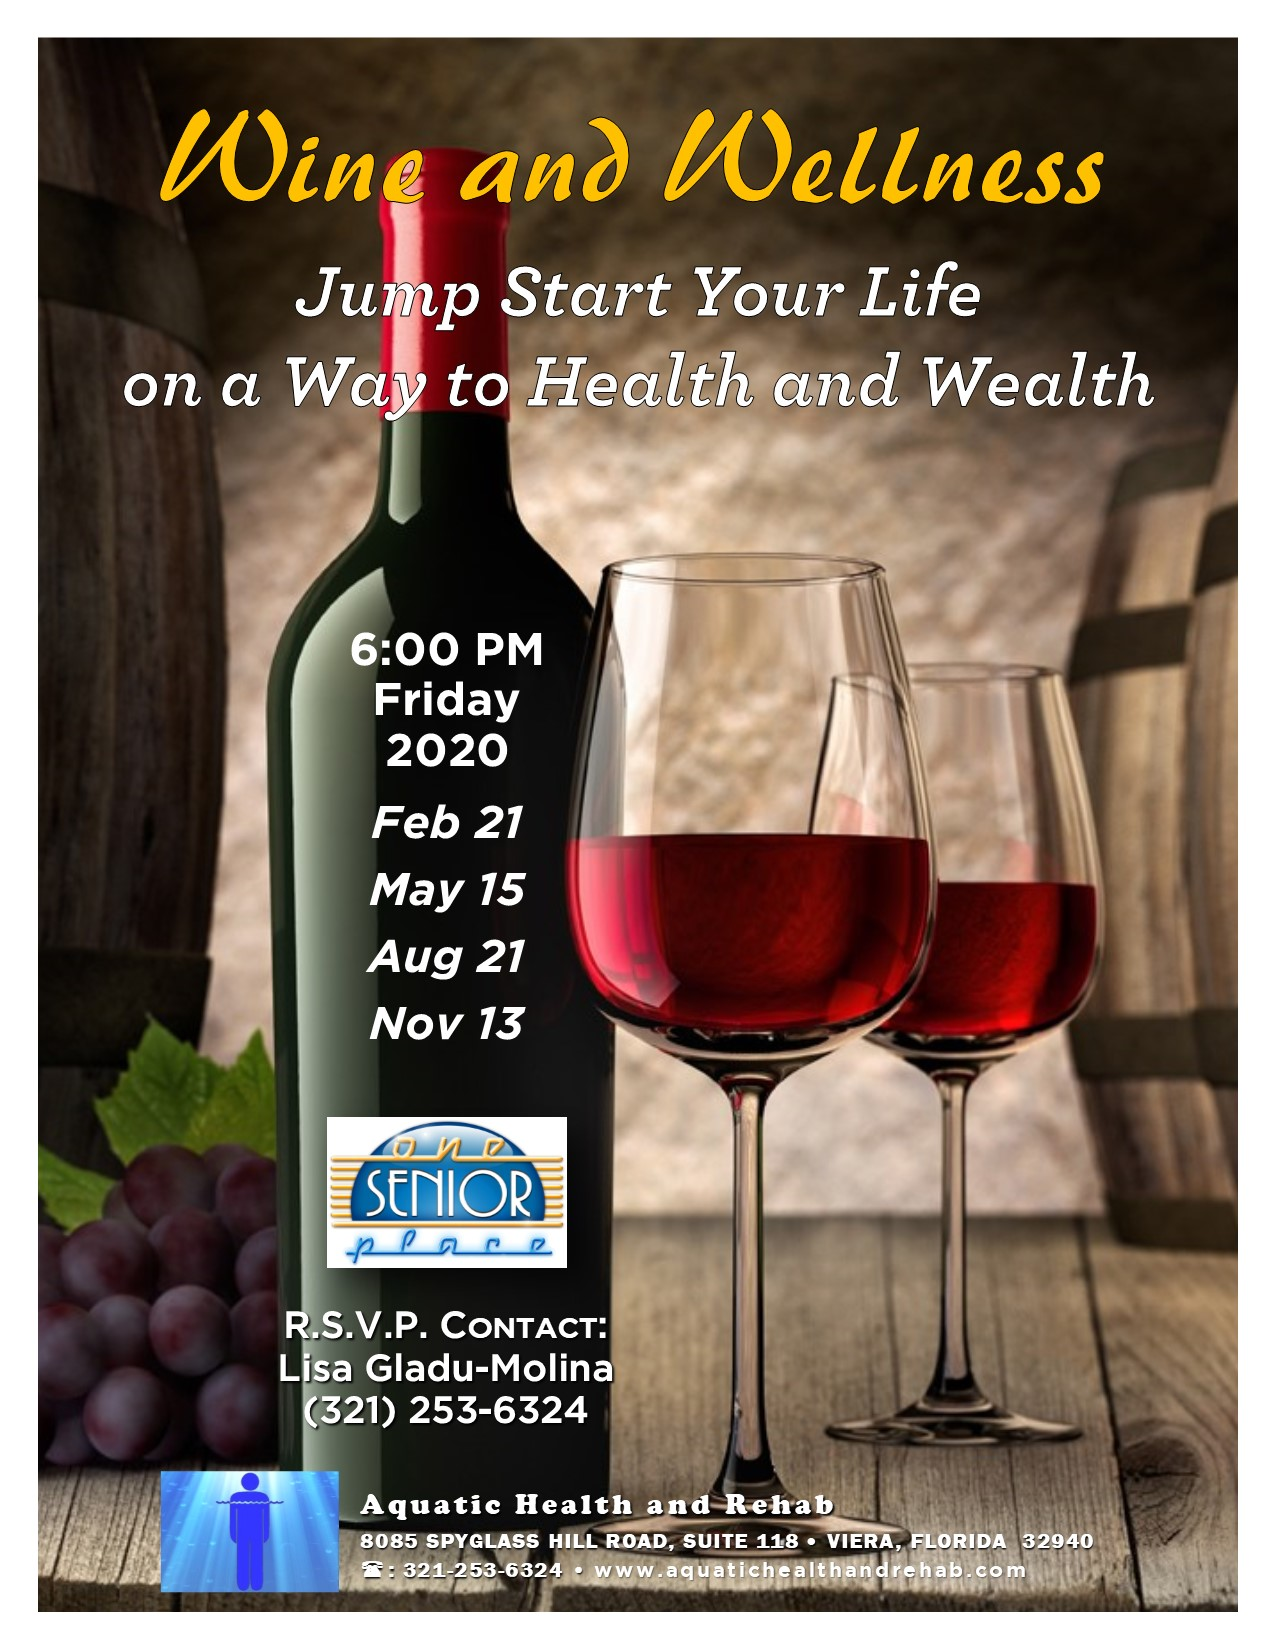 Wine and Wellness, presented by Aquatic Health and Rehab